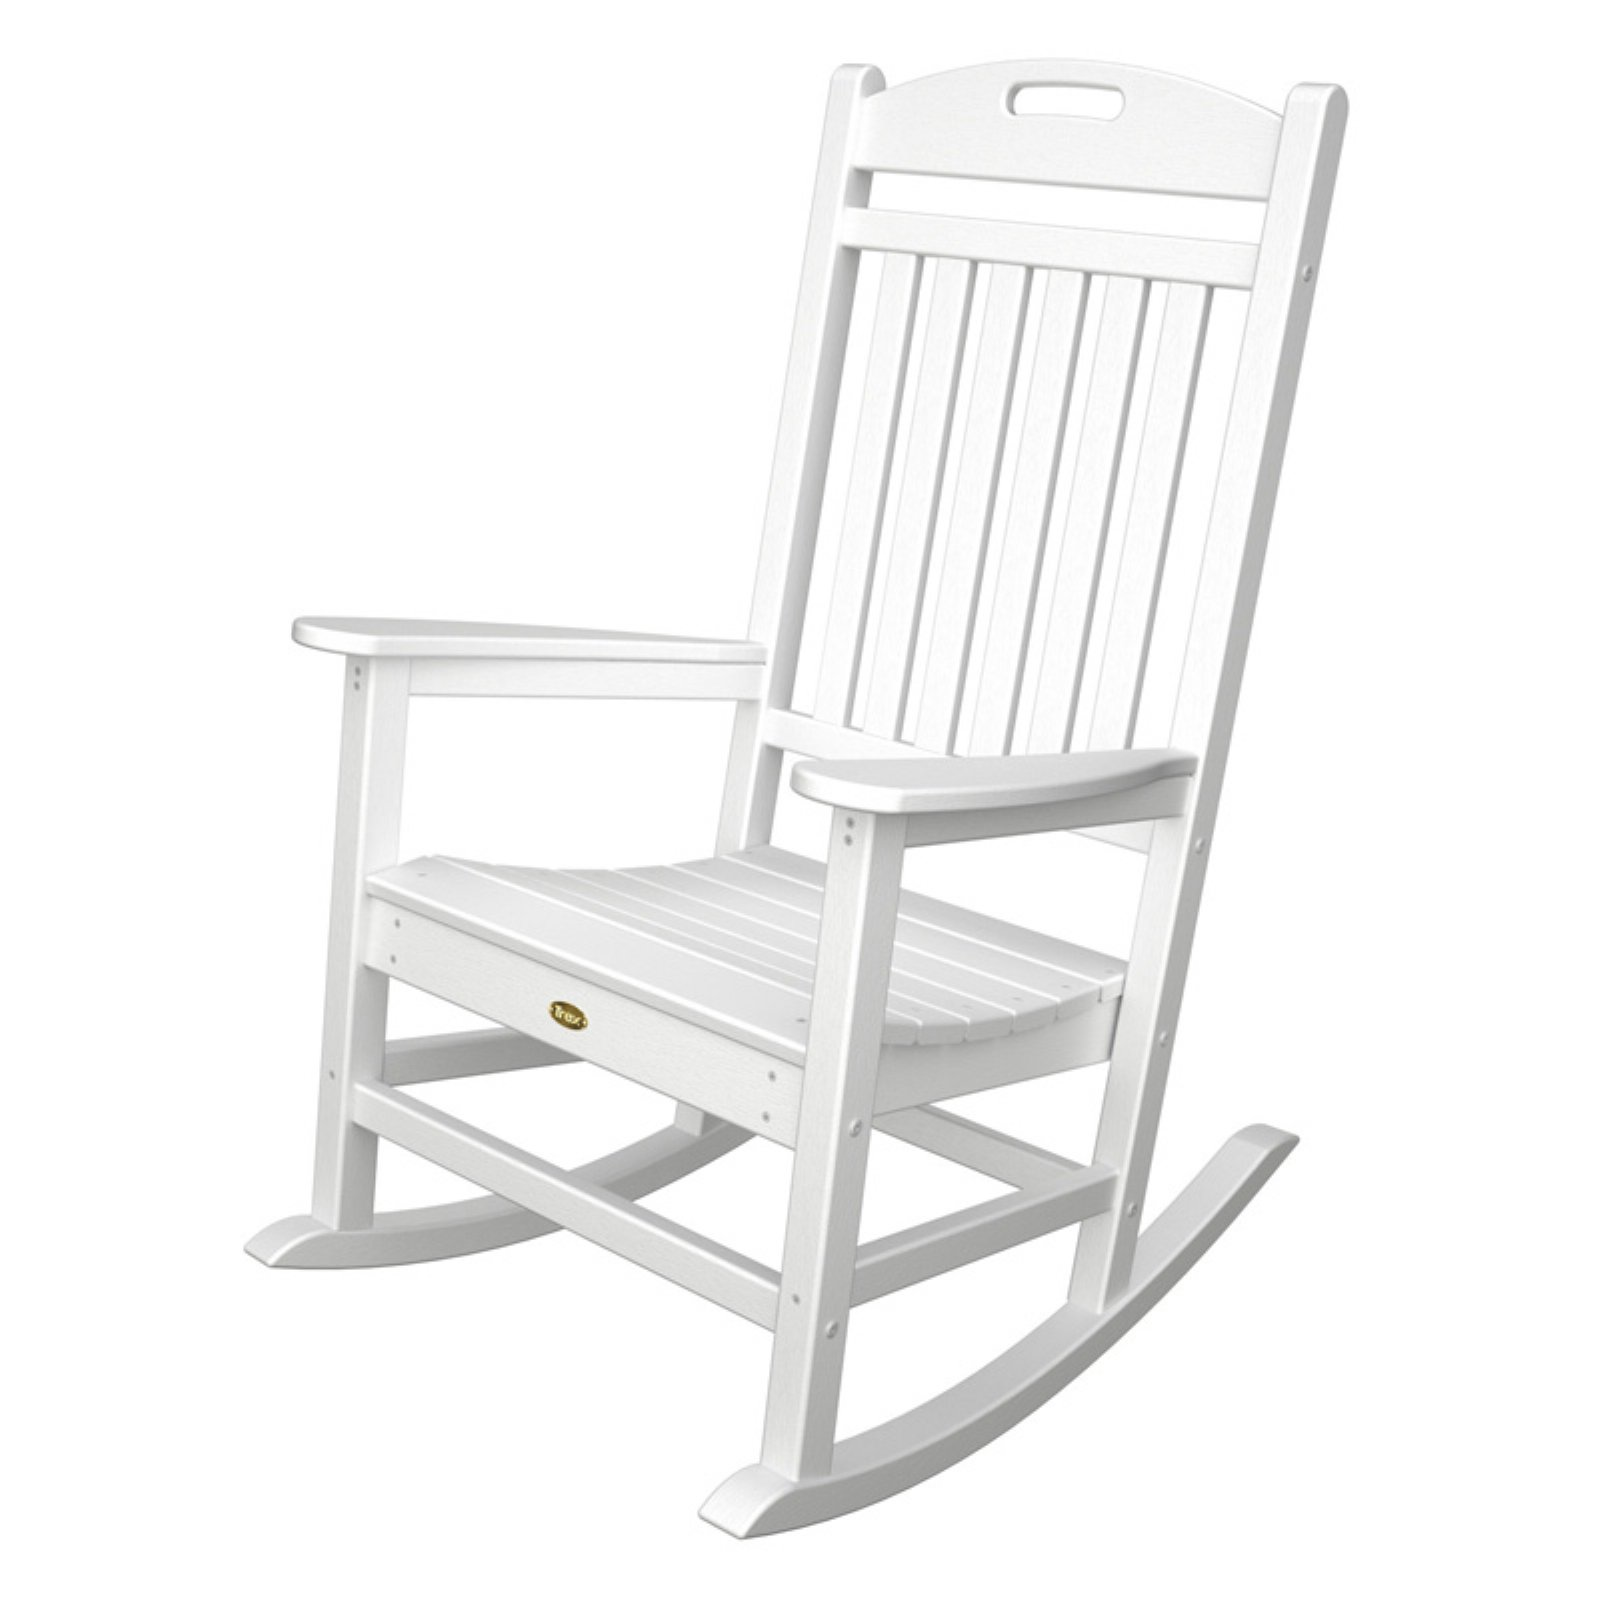 Beautiful Trex Outdoor Furniture Recycled Plastic Yacht Club Rocking Chair